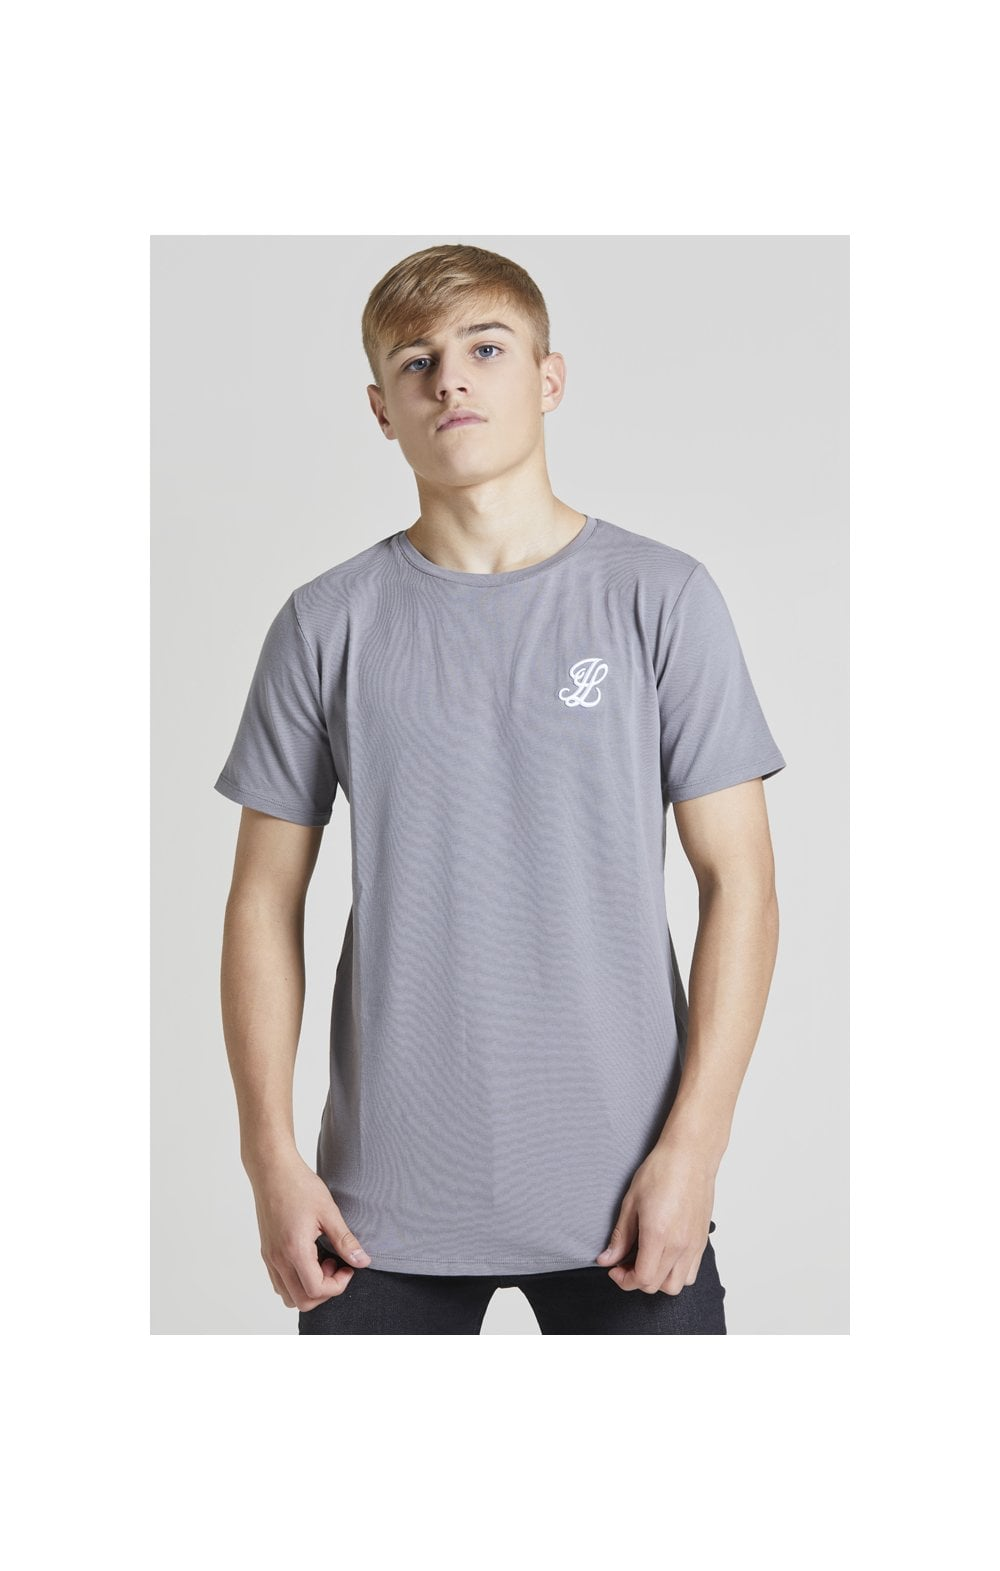 Illusive London S/S Core Tee - Grey